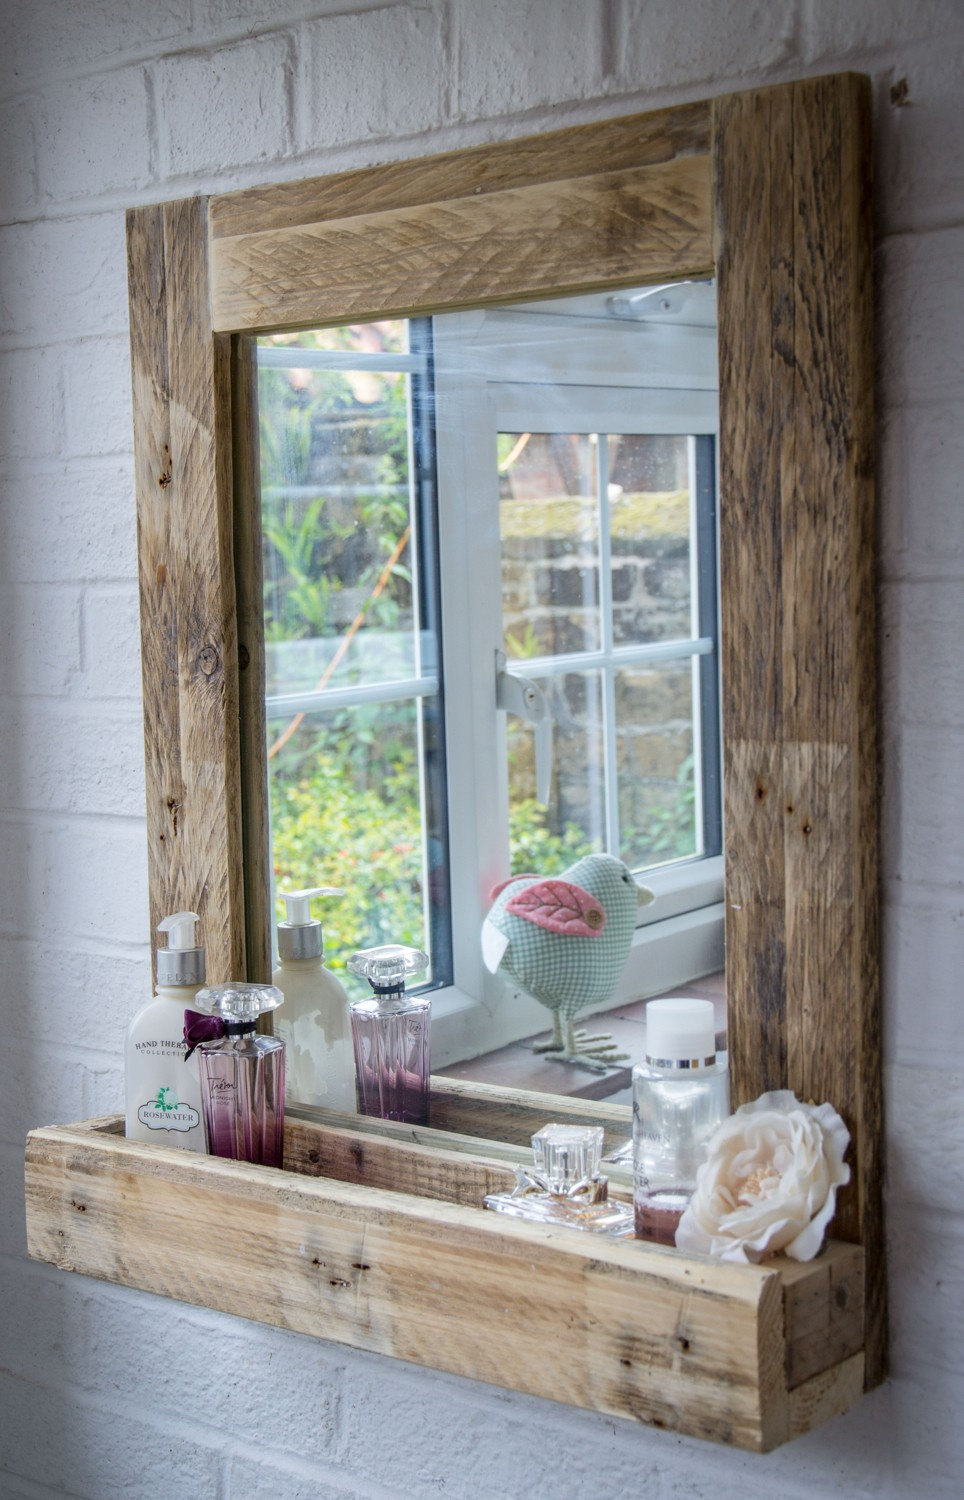 Best small space organization hacks 31 gorgeous rustic Rustic bathroom decor ideas